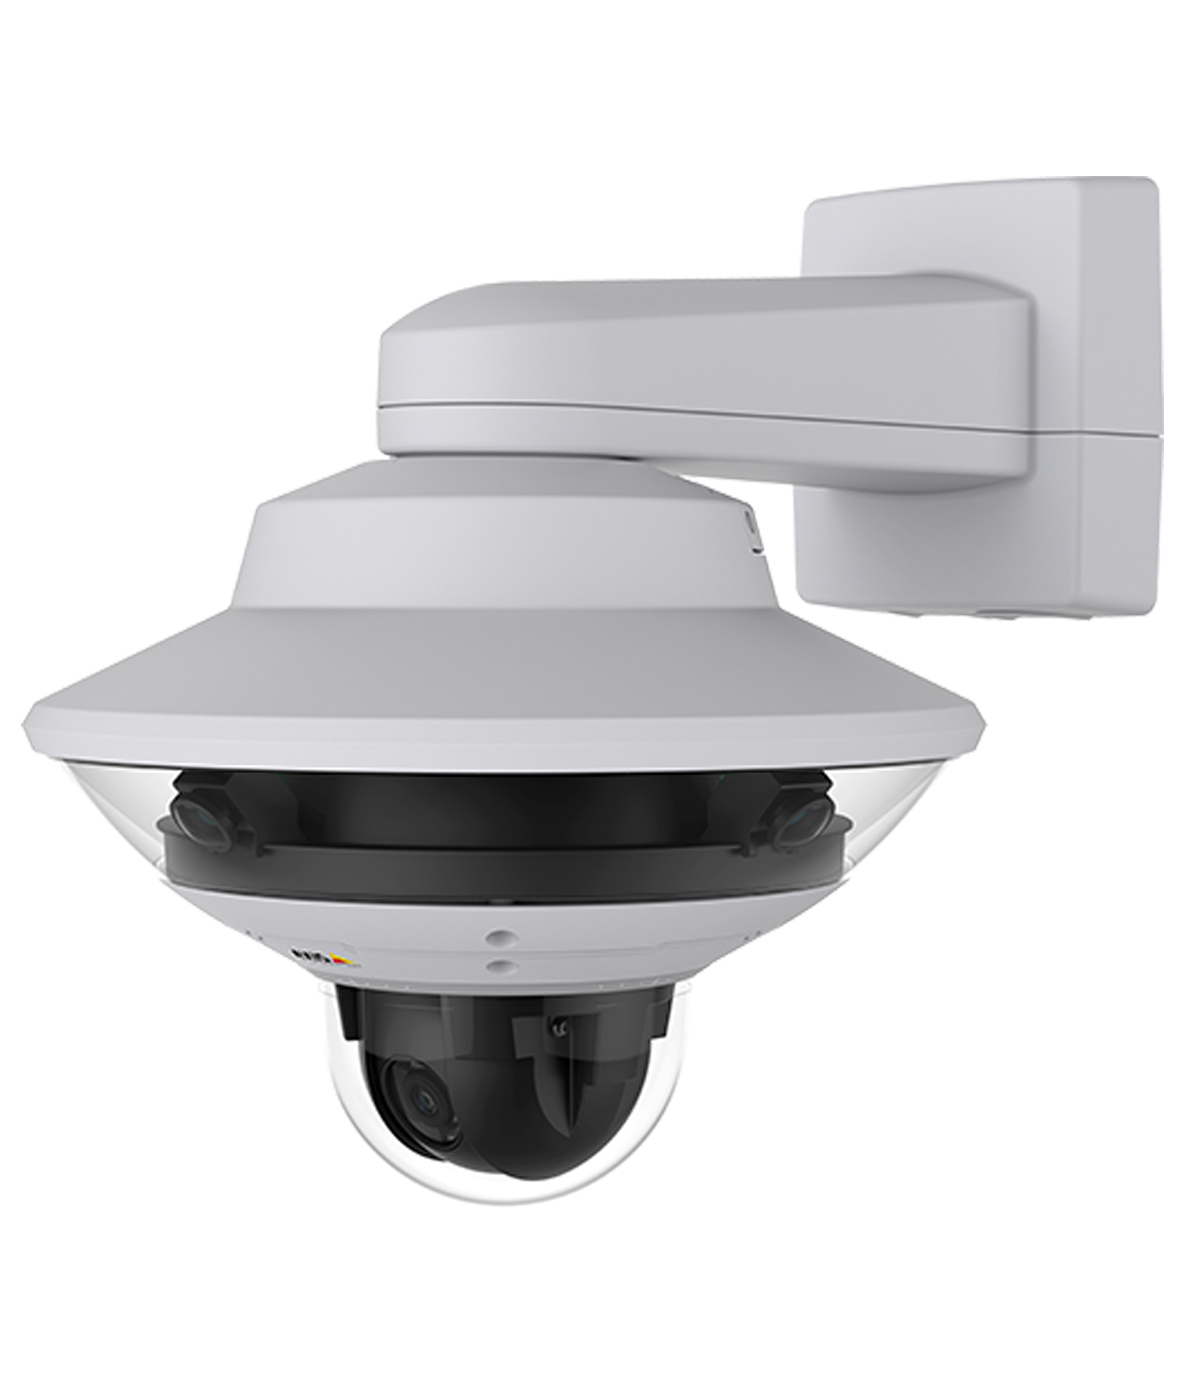 cctv_system_security_system_singapore_product_axis_q6000-e_mk_2_ptz_camera